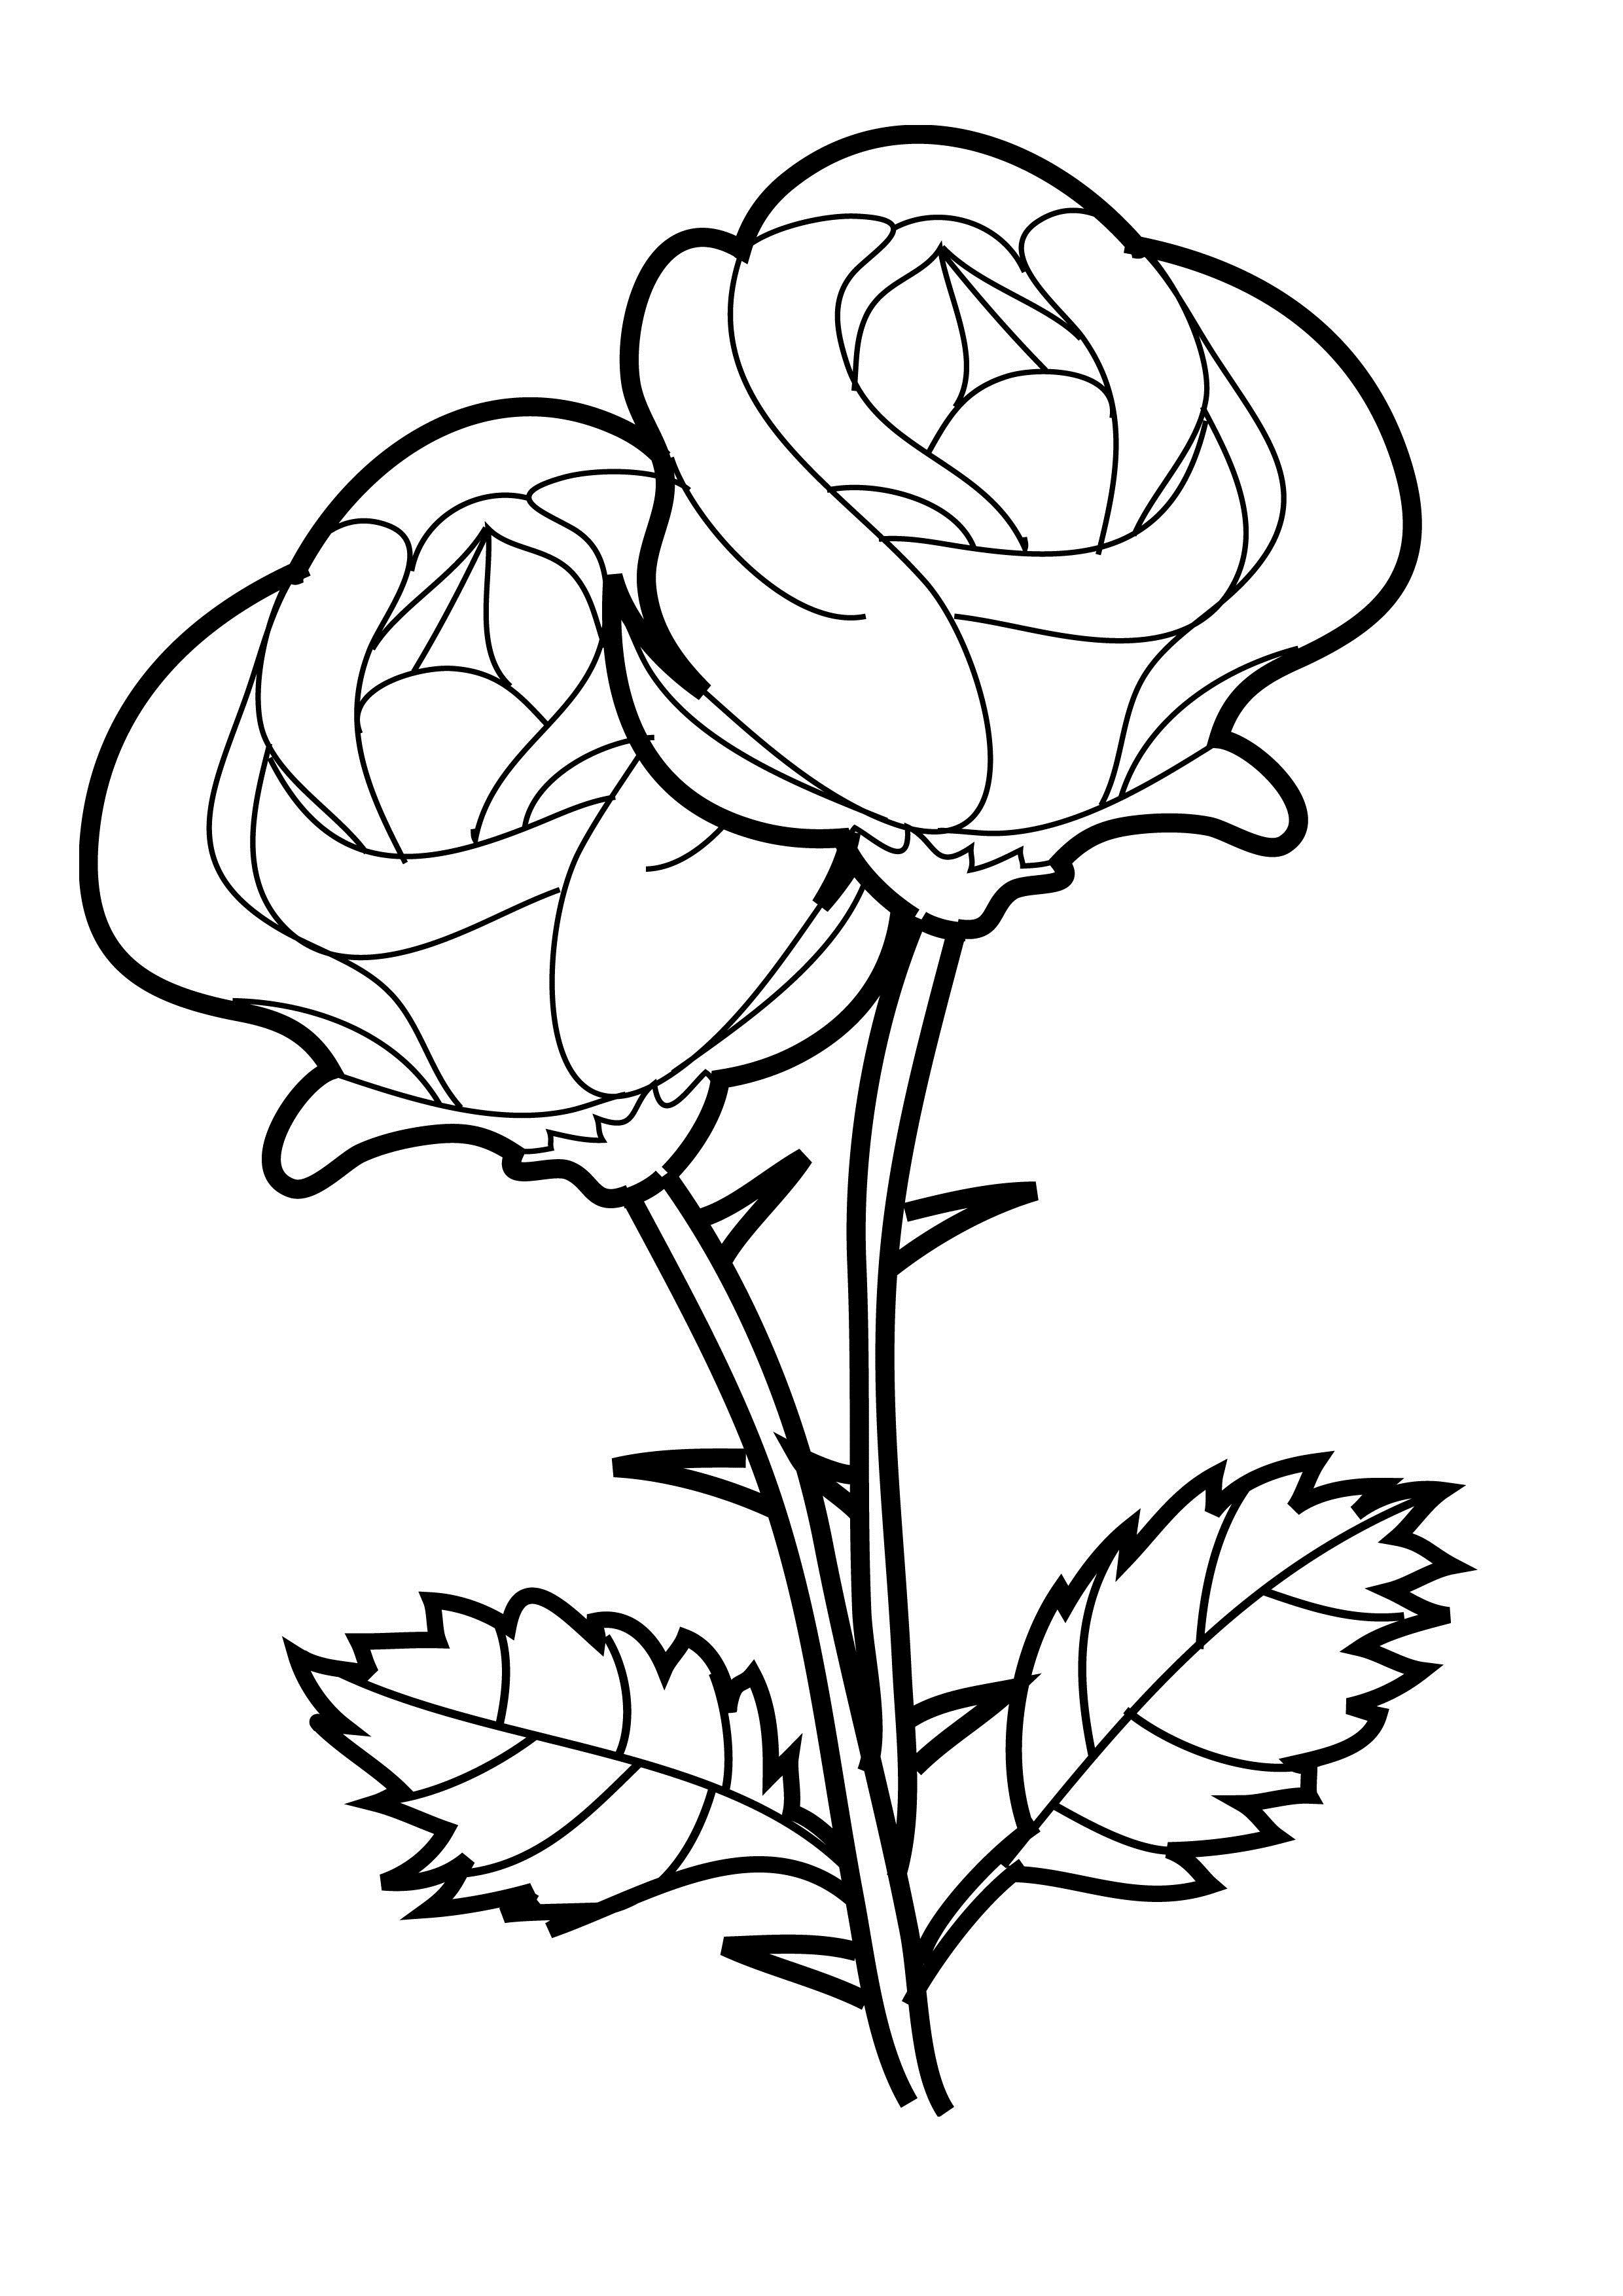 rose color sheets roses coloring pages to download and print for free rose color sheets